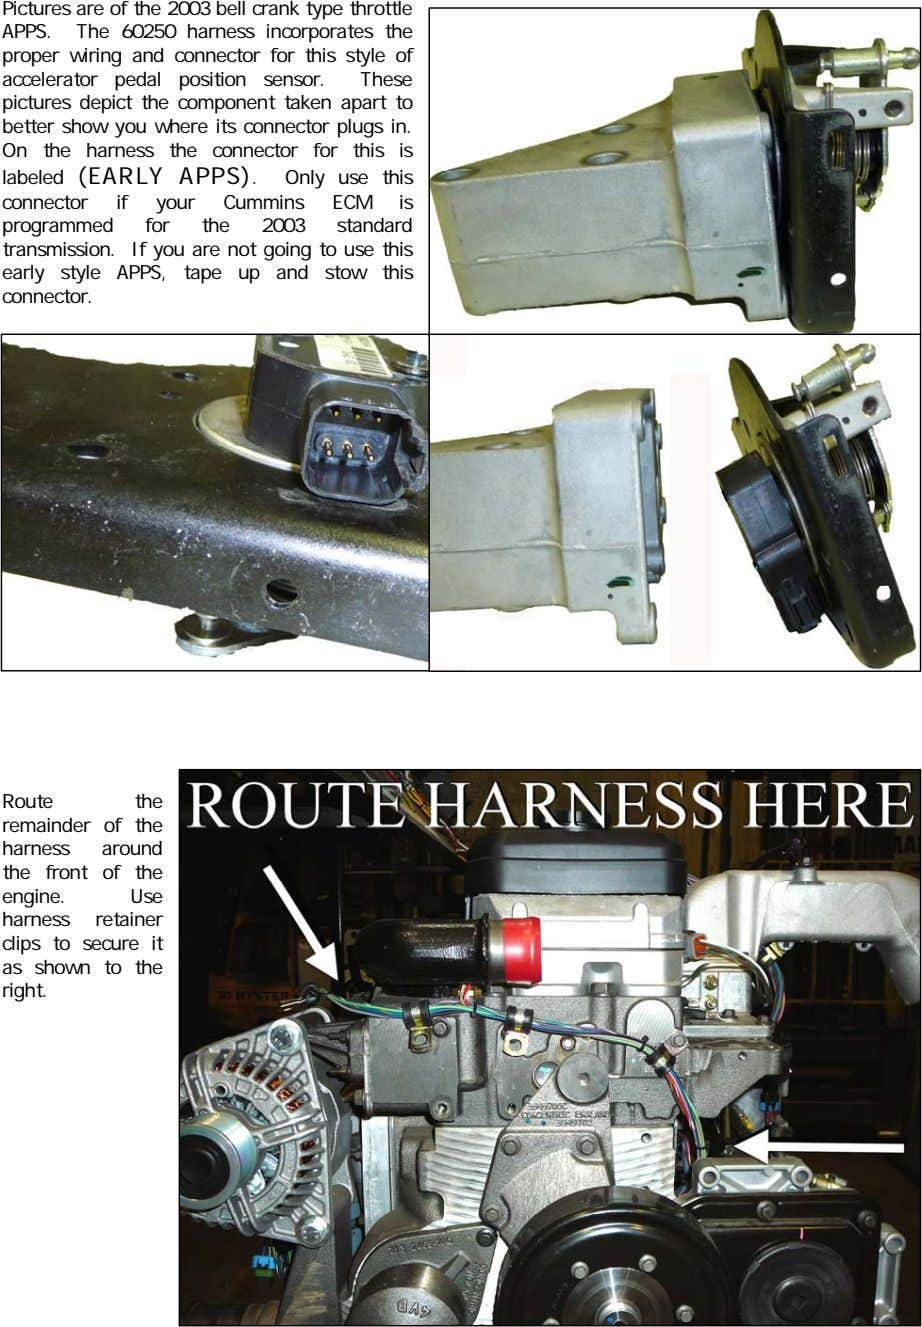 Pictures are of the 2003 bell crank type throttle APPS. The 60250 harness incorporates the